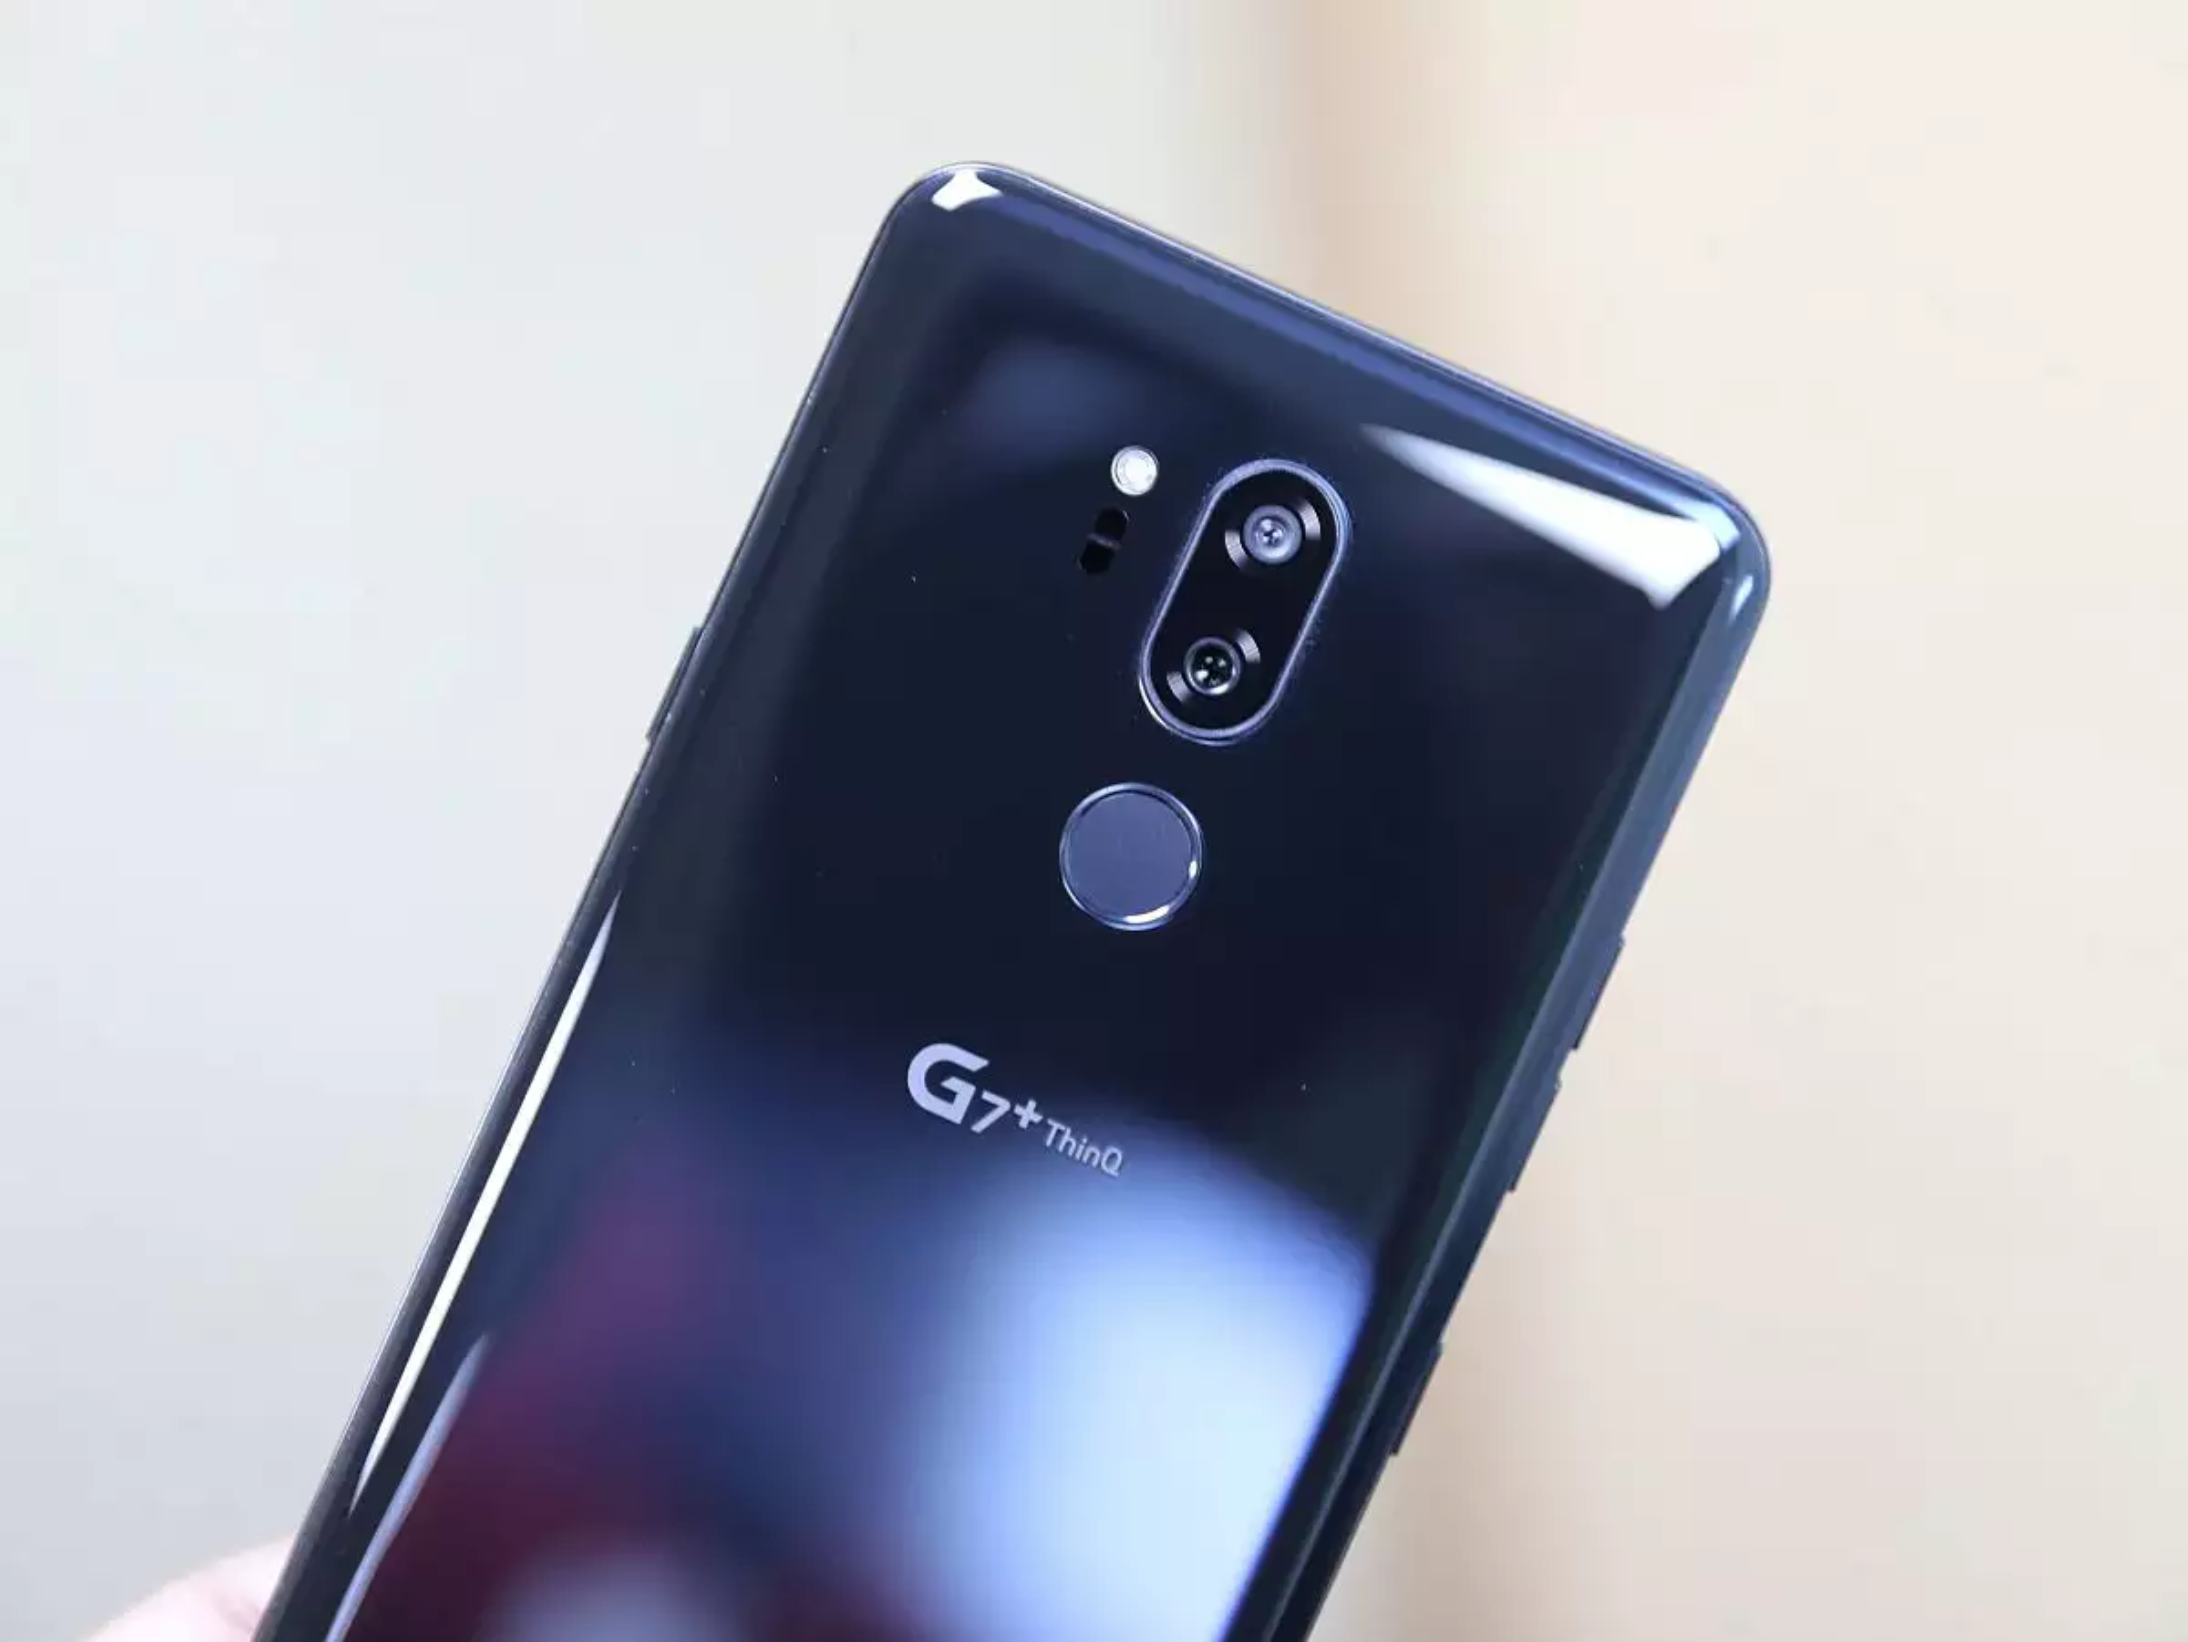 LG G8 ThinQ to launch on February 24 globally